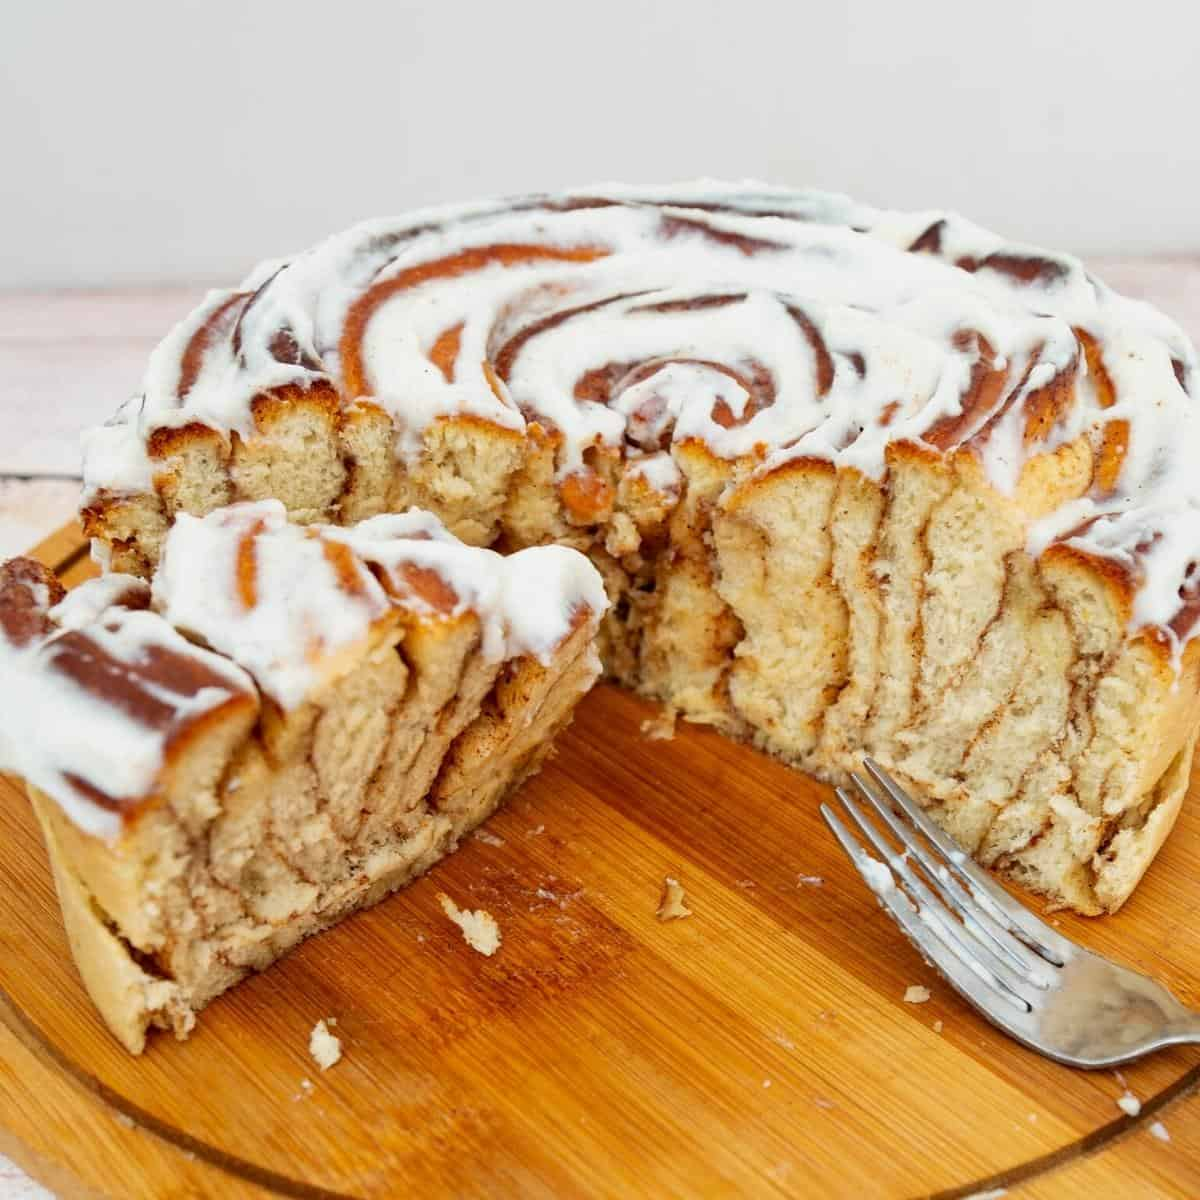 A sliced giant cinnamon roll on the wooden board.